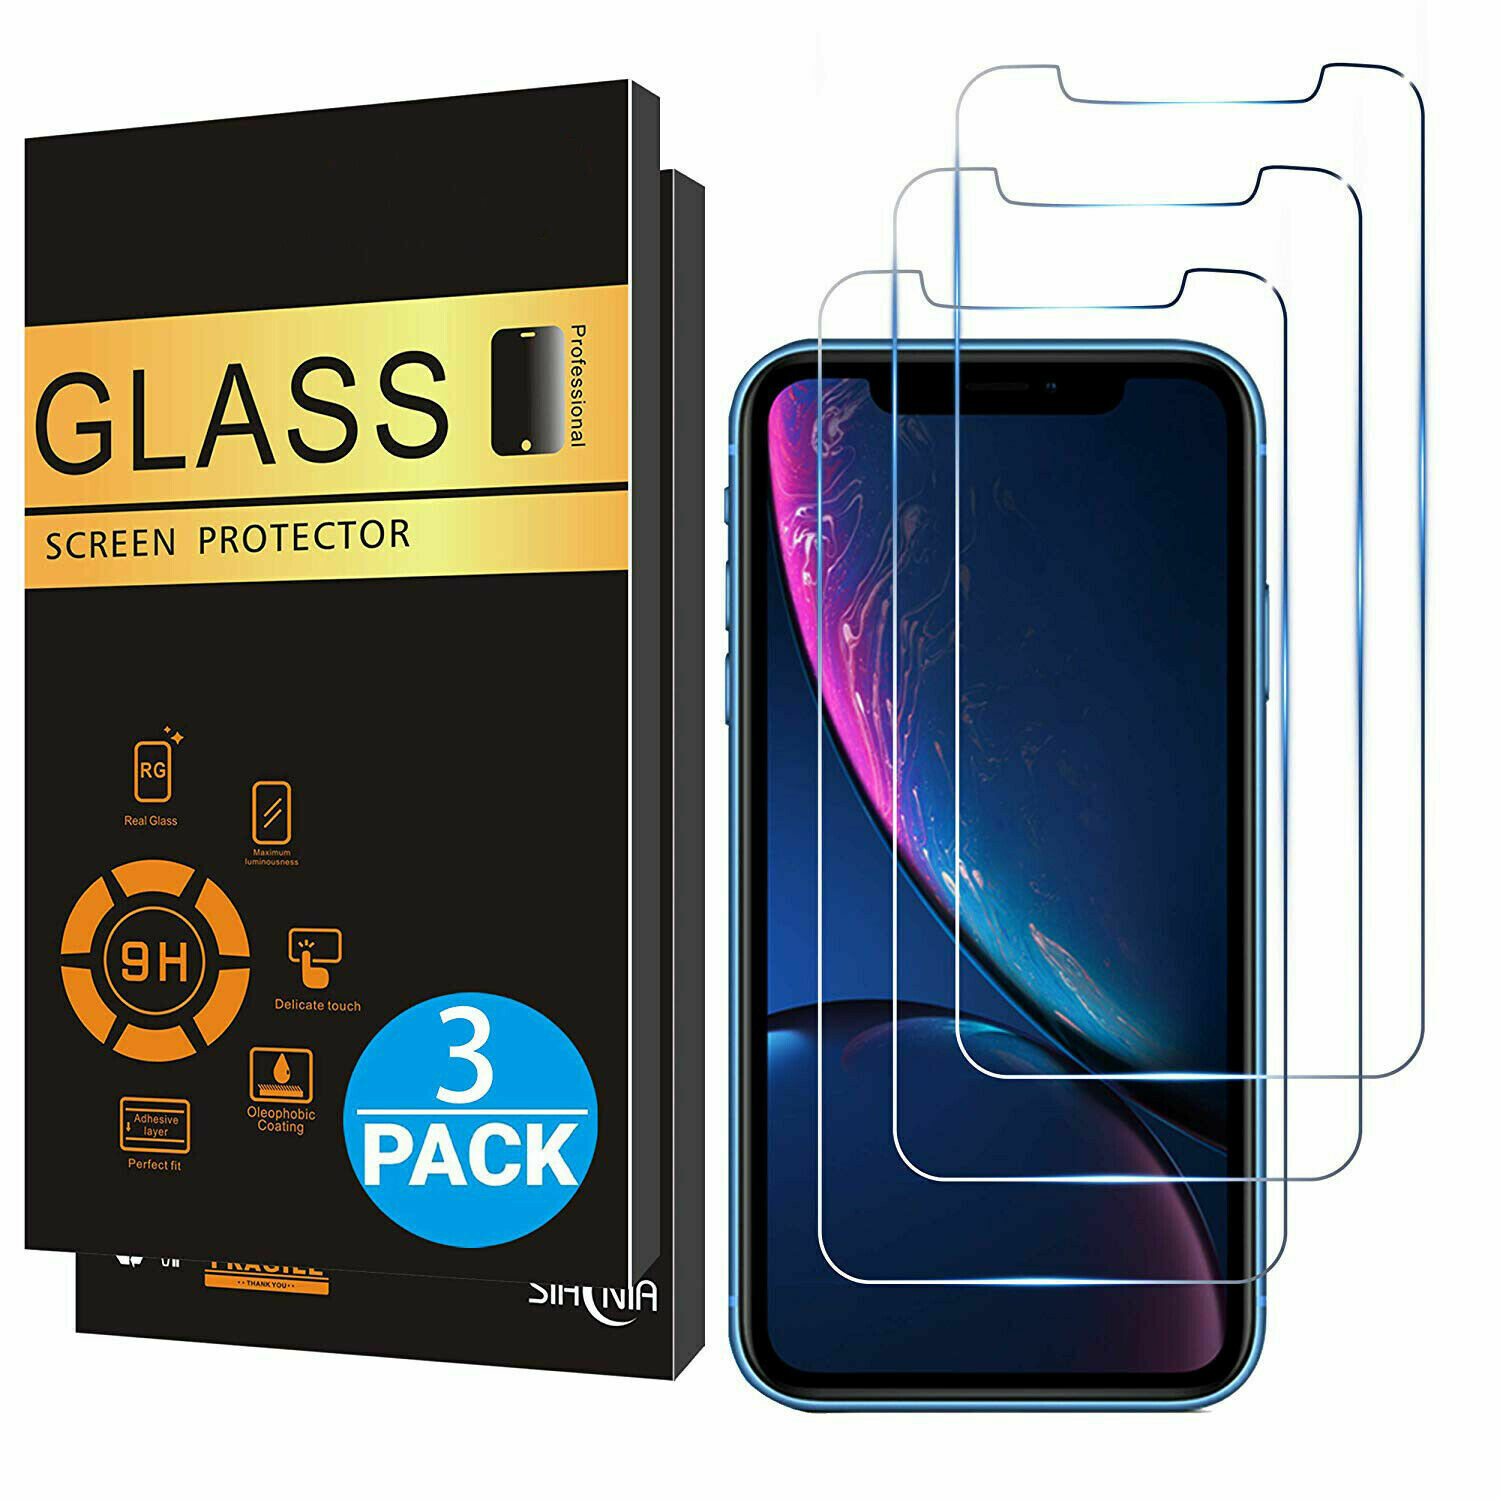 3x iPhone 11 Pro Max Displayschutz 9H Panzerglas